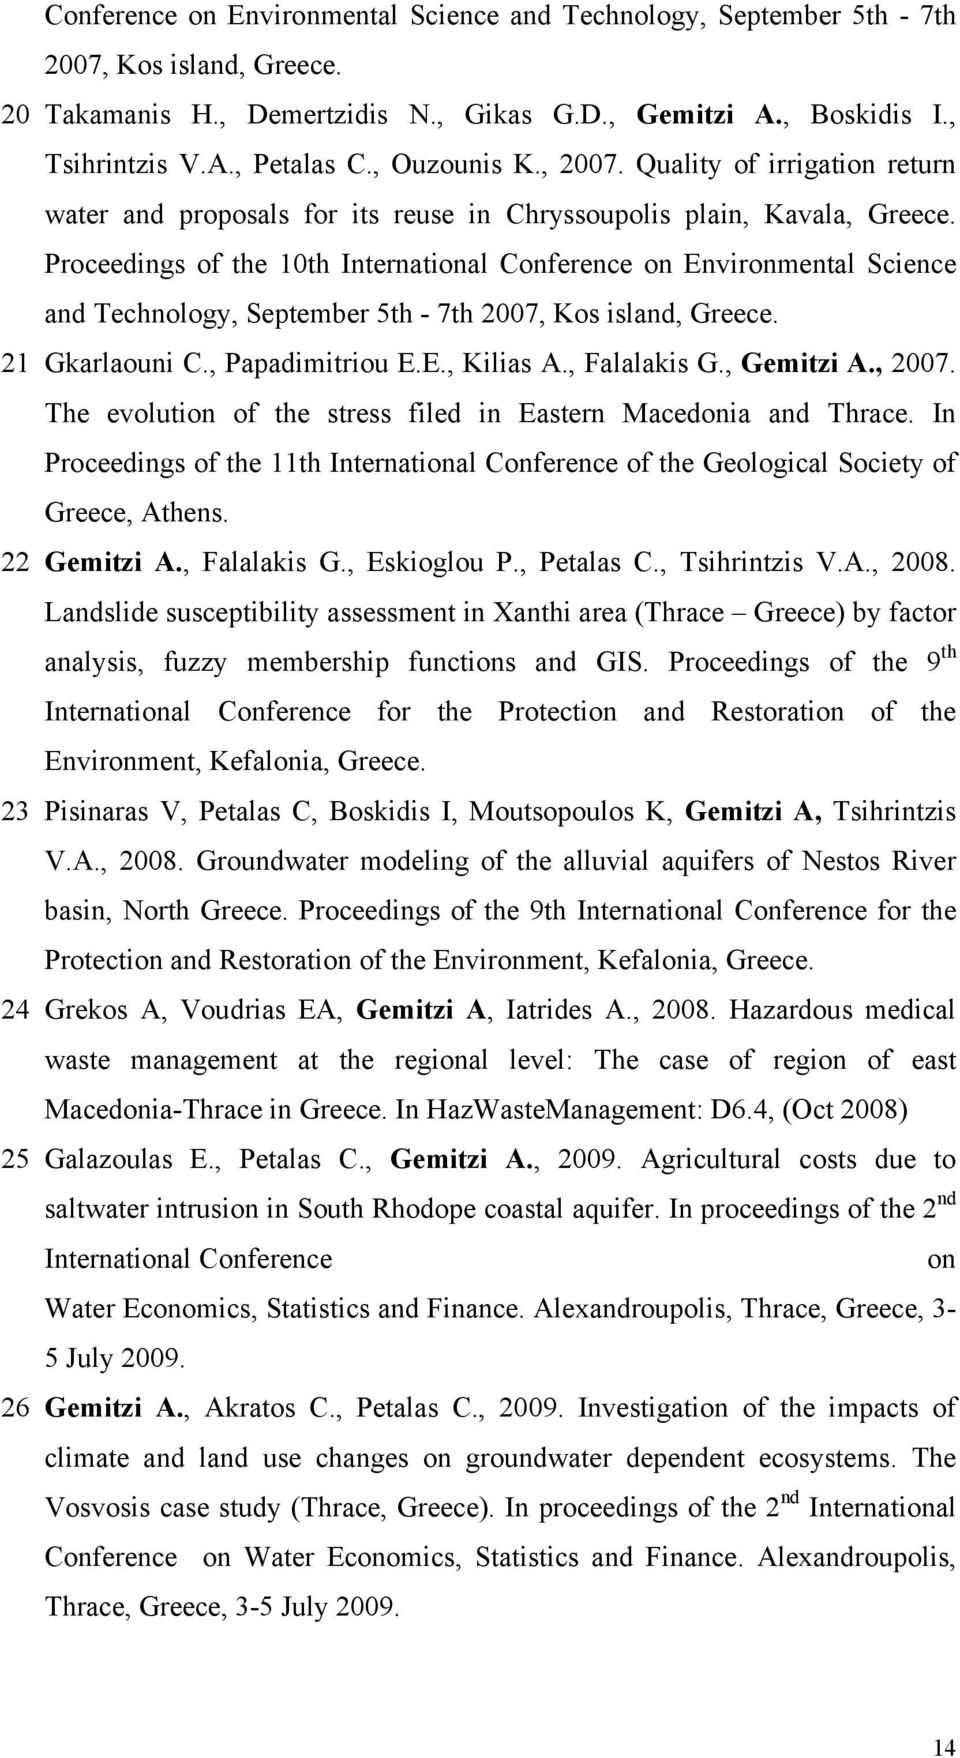 Proceedings of the 10th International Conference on Environmental Science and Technology, September 5th - 7th 2007, Kos island, Greece. 21 Gkarlaouni C., Papadimitriou E.E., Kilias A., Falalakis G.